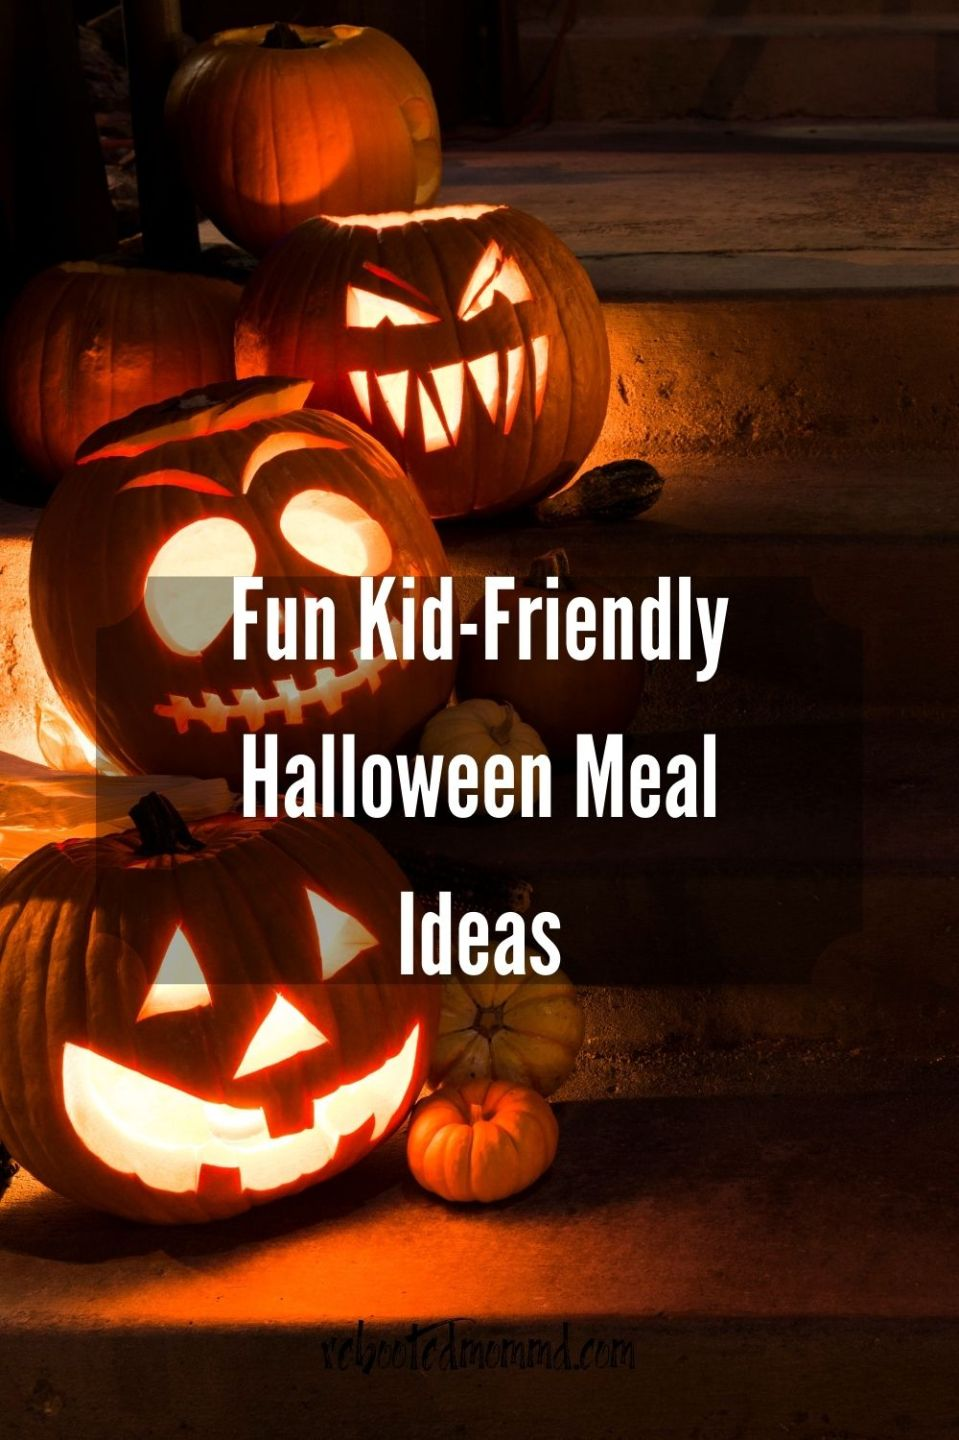 Fun Kid-Friendly Halloween Meal Ideas